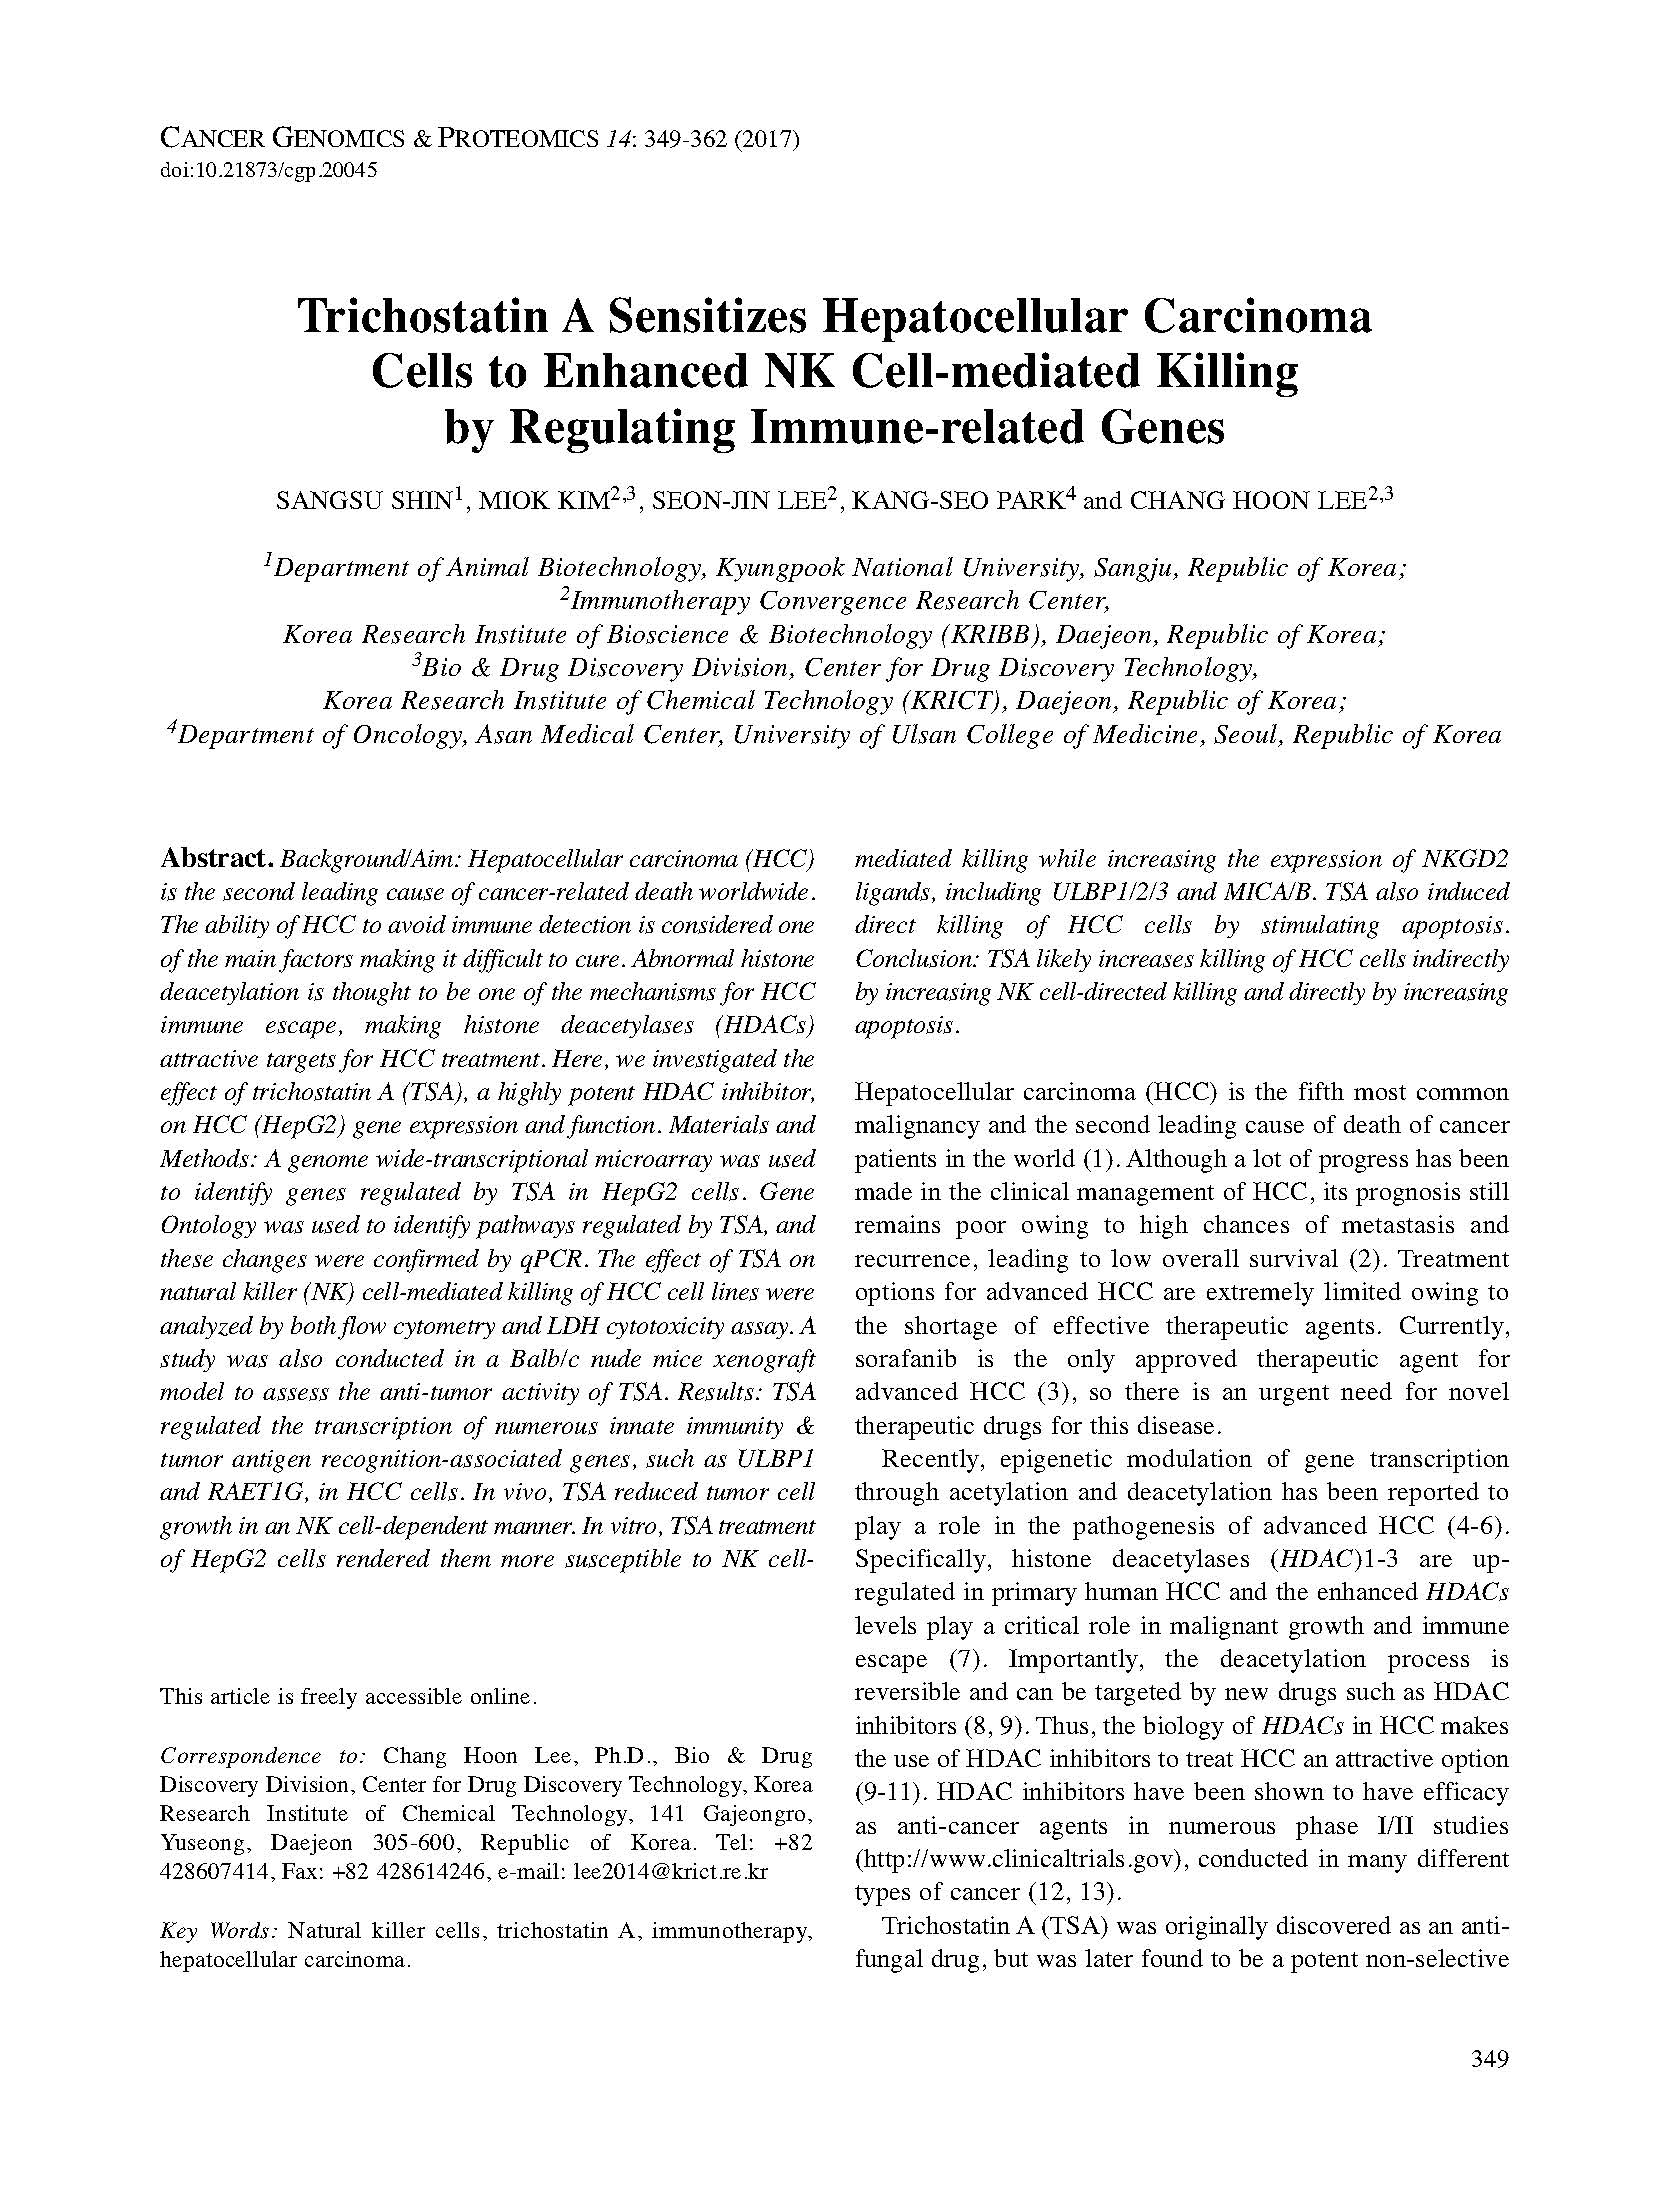 Trichostatin A Sensitizes Hepatocellular Carcinoma Cells to Enhanced NK Cell-mediated Killing by Regulating Immune-related Genes